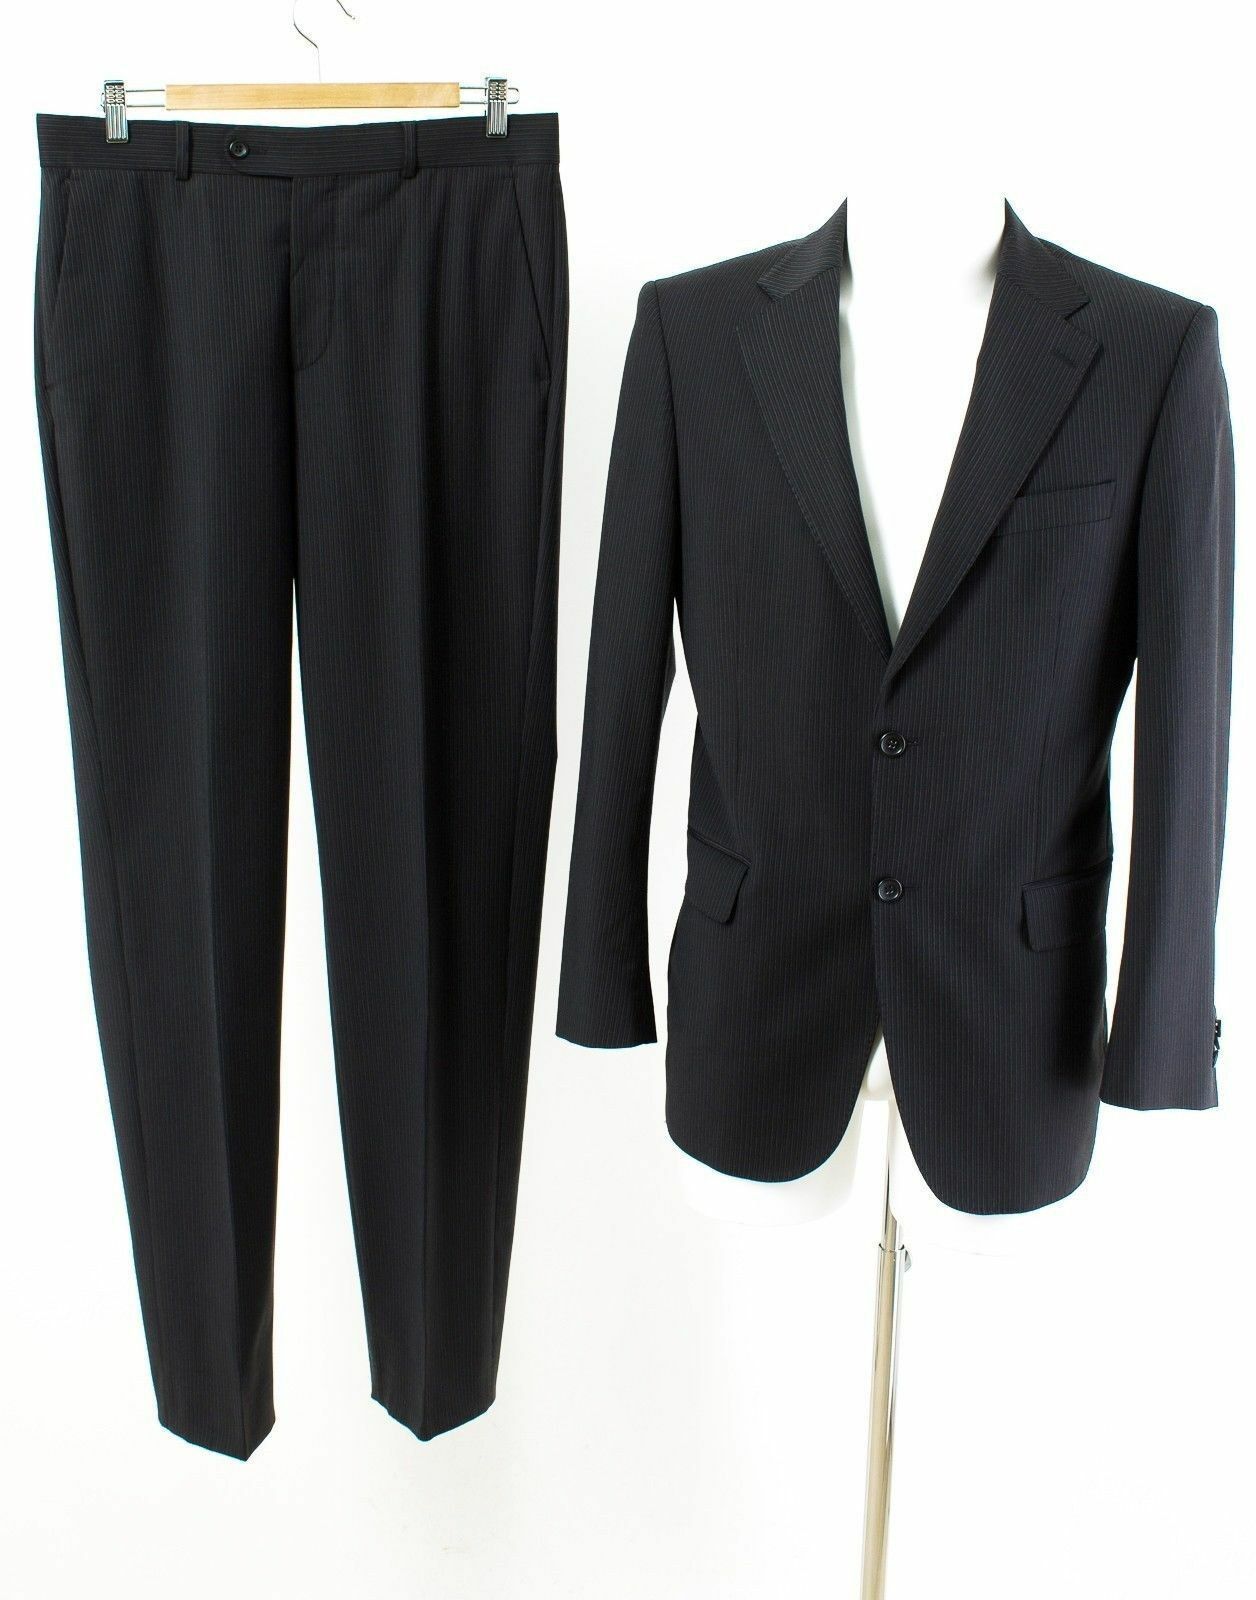 LAWRENCE BY LAWRENCE GREY Anzug Gr. S   48 Wolle (SUPER 140'S) Business Suit